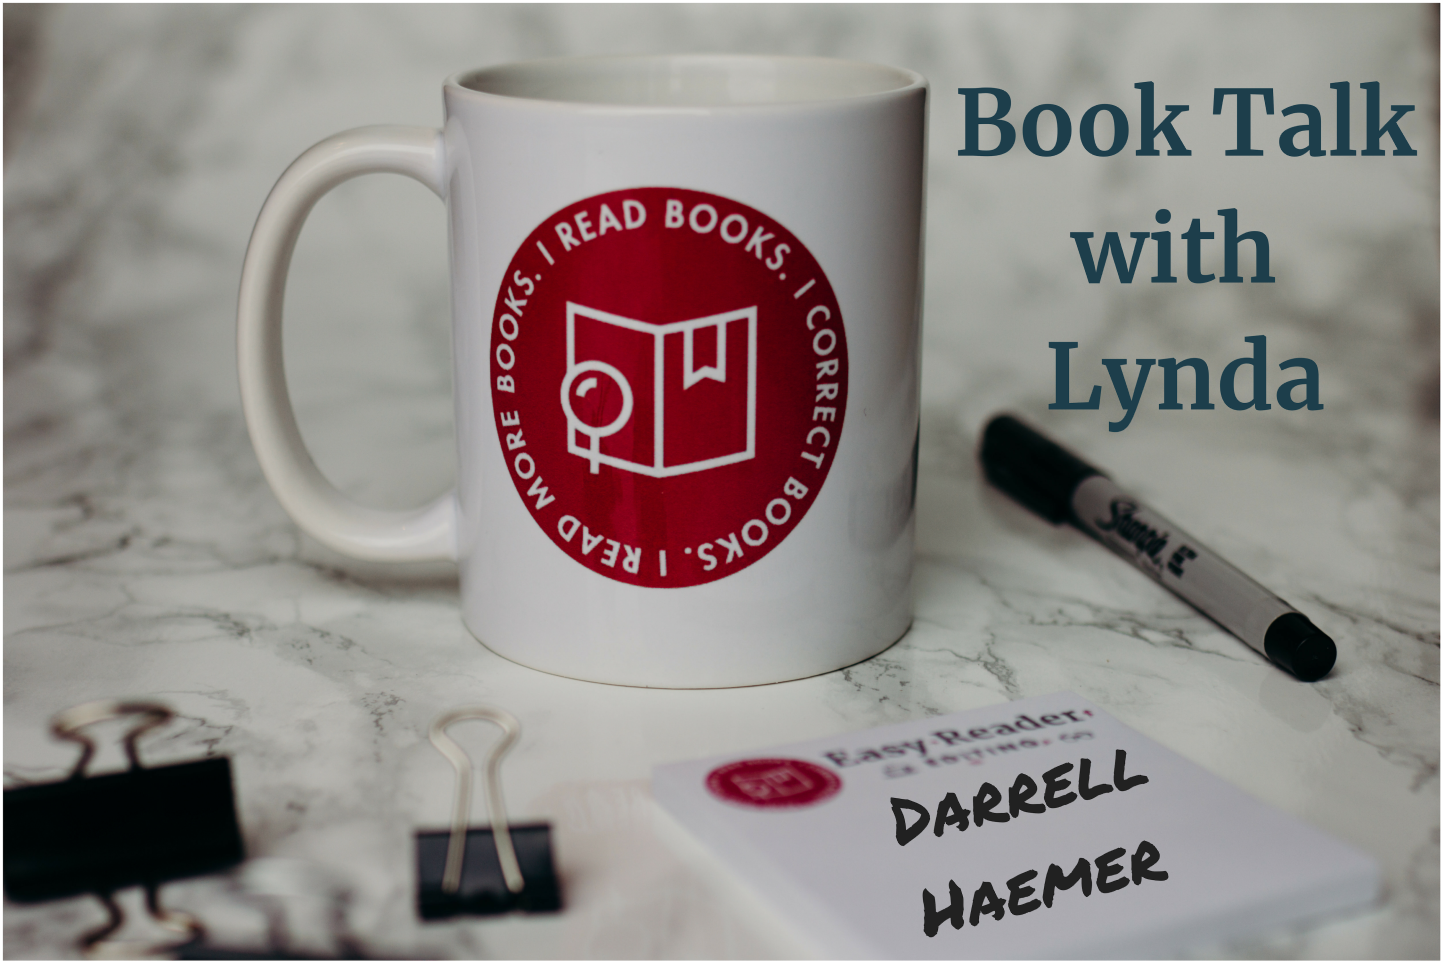 Book Talk with Lynda - Darrell Haemer author - Easy Reader Editing mug with sharpie and Post-it notes